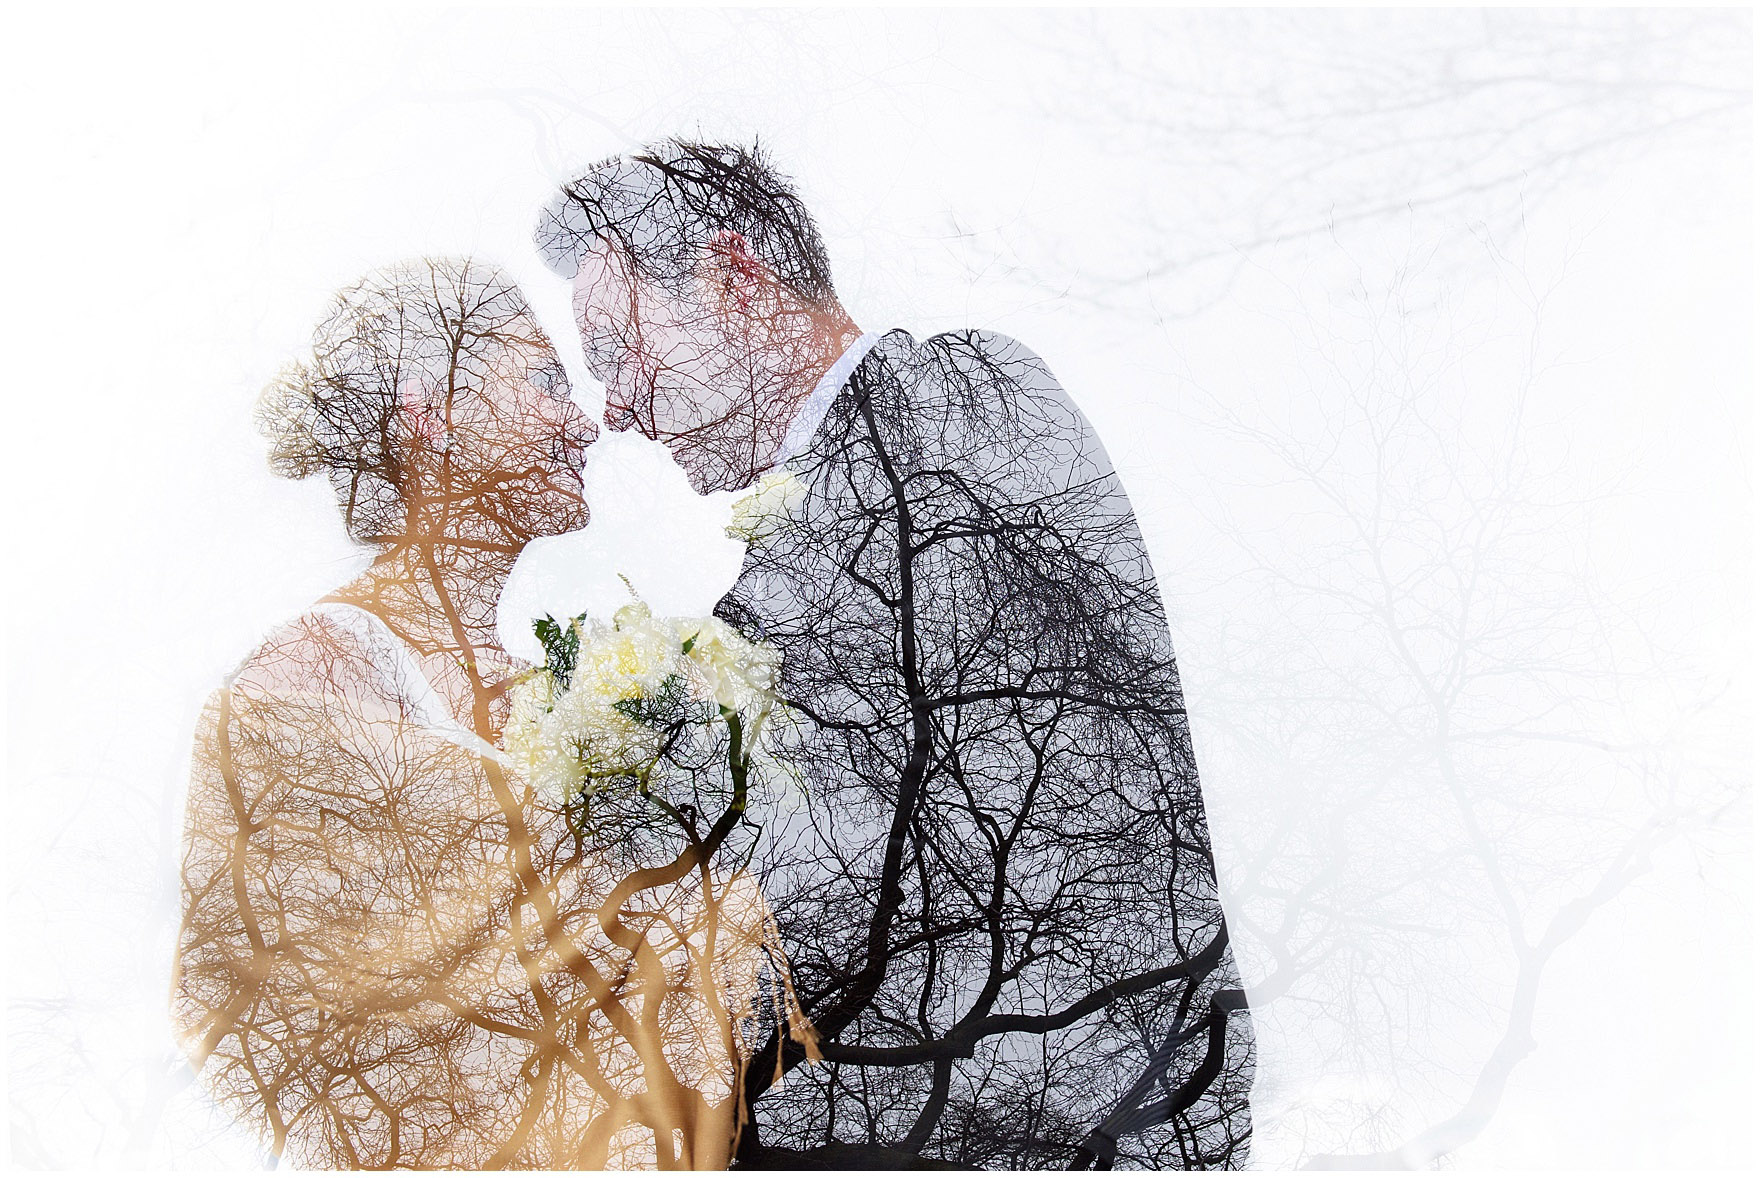 A double exposure photograph of a bride and groom against bare spring branches prior to their Ovation Chicago wedding.